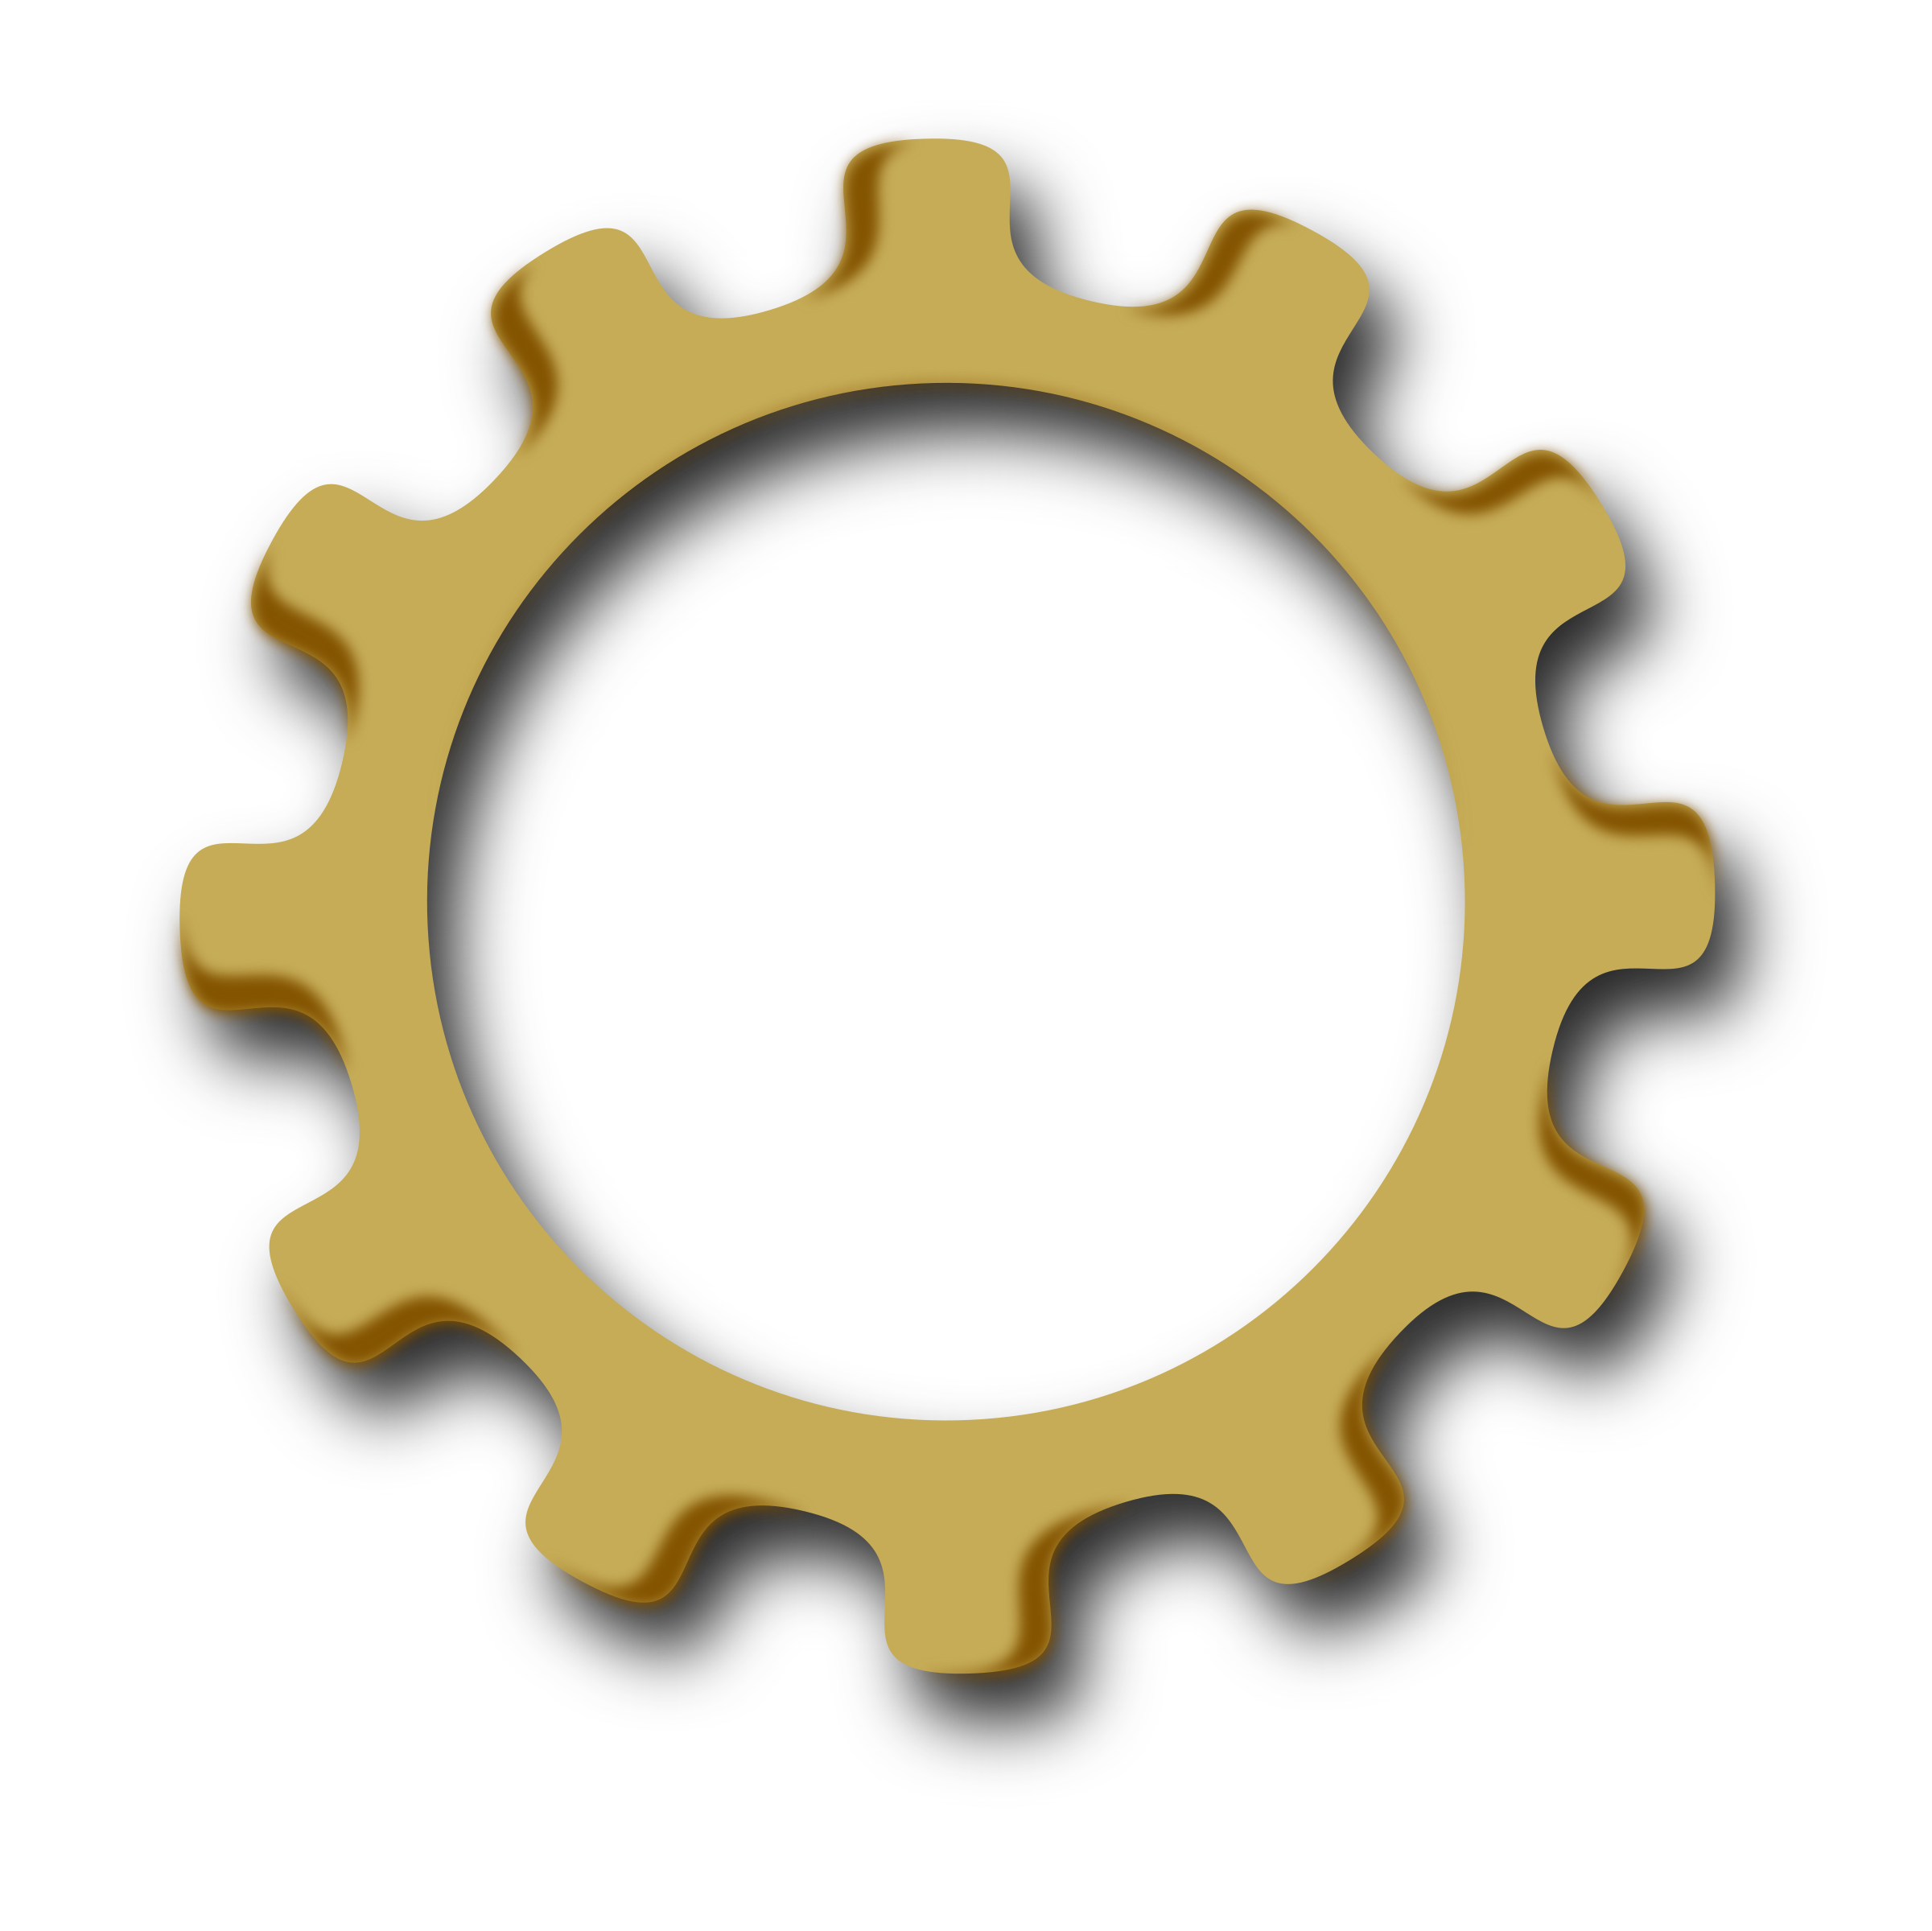 gearwheel by marauder